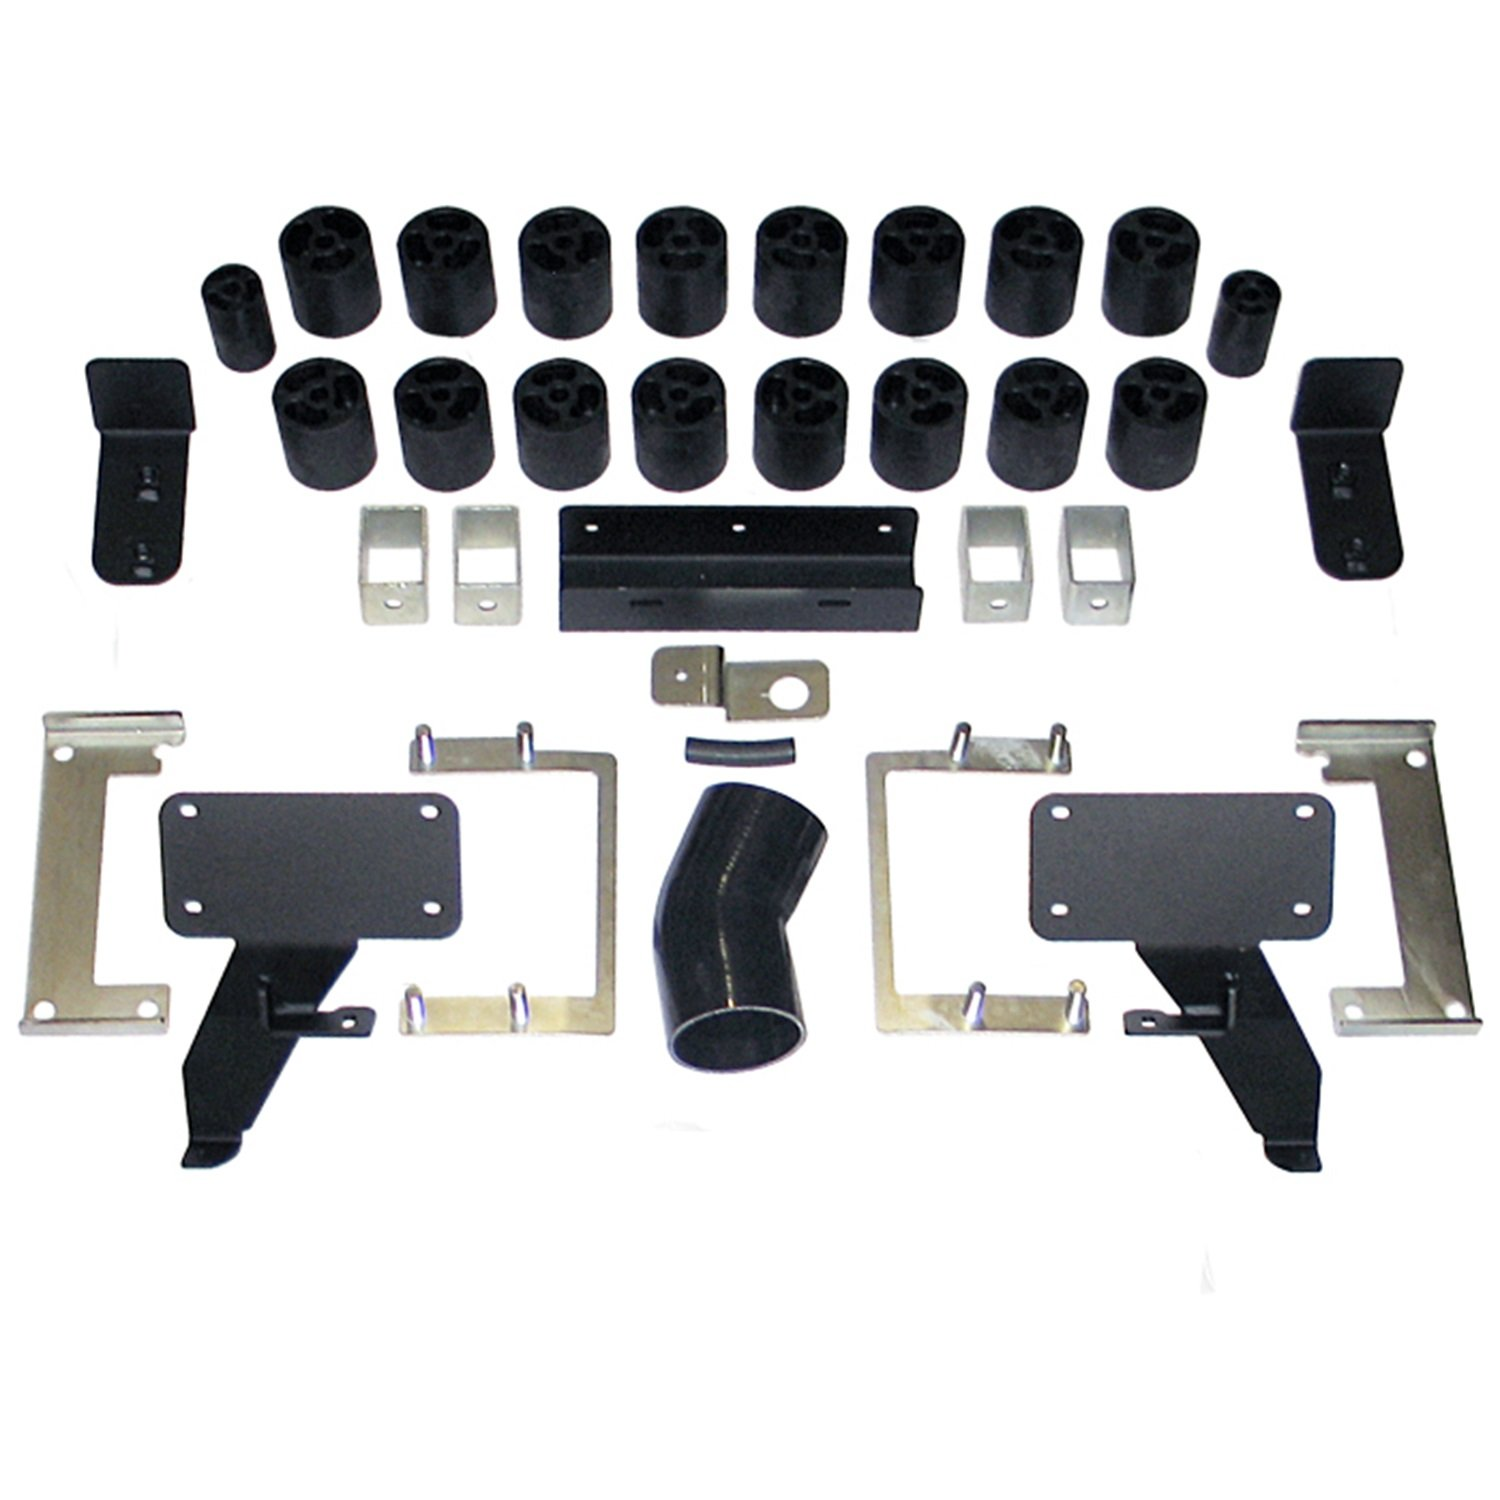 Made in America Ford F-150 Gas 2WD and 4WD W//OEM Hitch Ecoboost Motor Only 3 Body Lift Kit Performance Accessories PA70103 Ford F-150 Gas 2WD and 4WD W//OEM Hitch Ecoboost Motor Only 3 Body Lift Kit fits 2011 to 2014